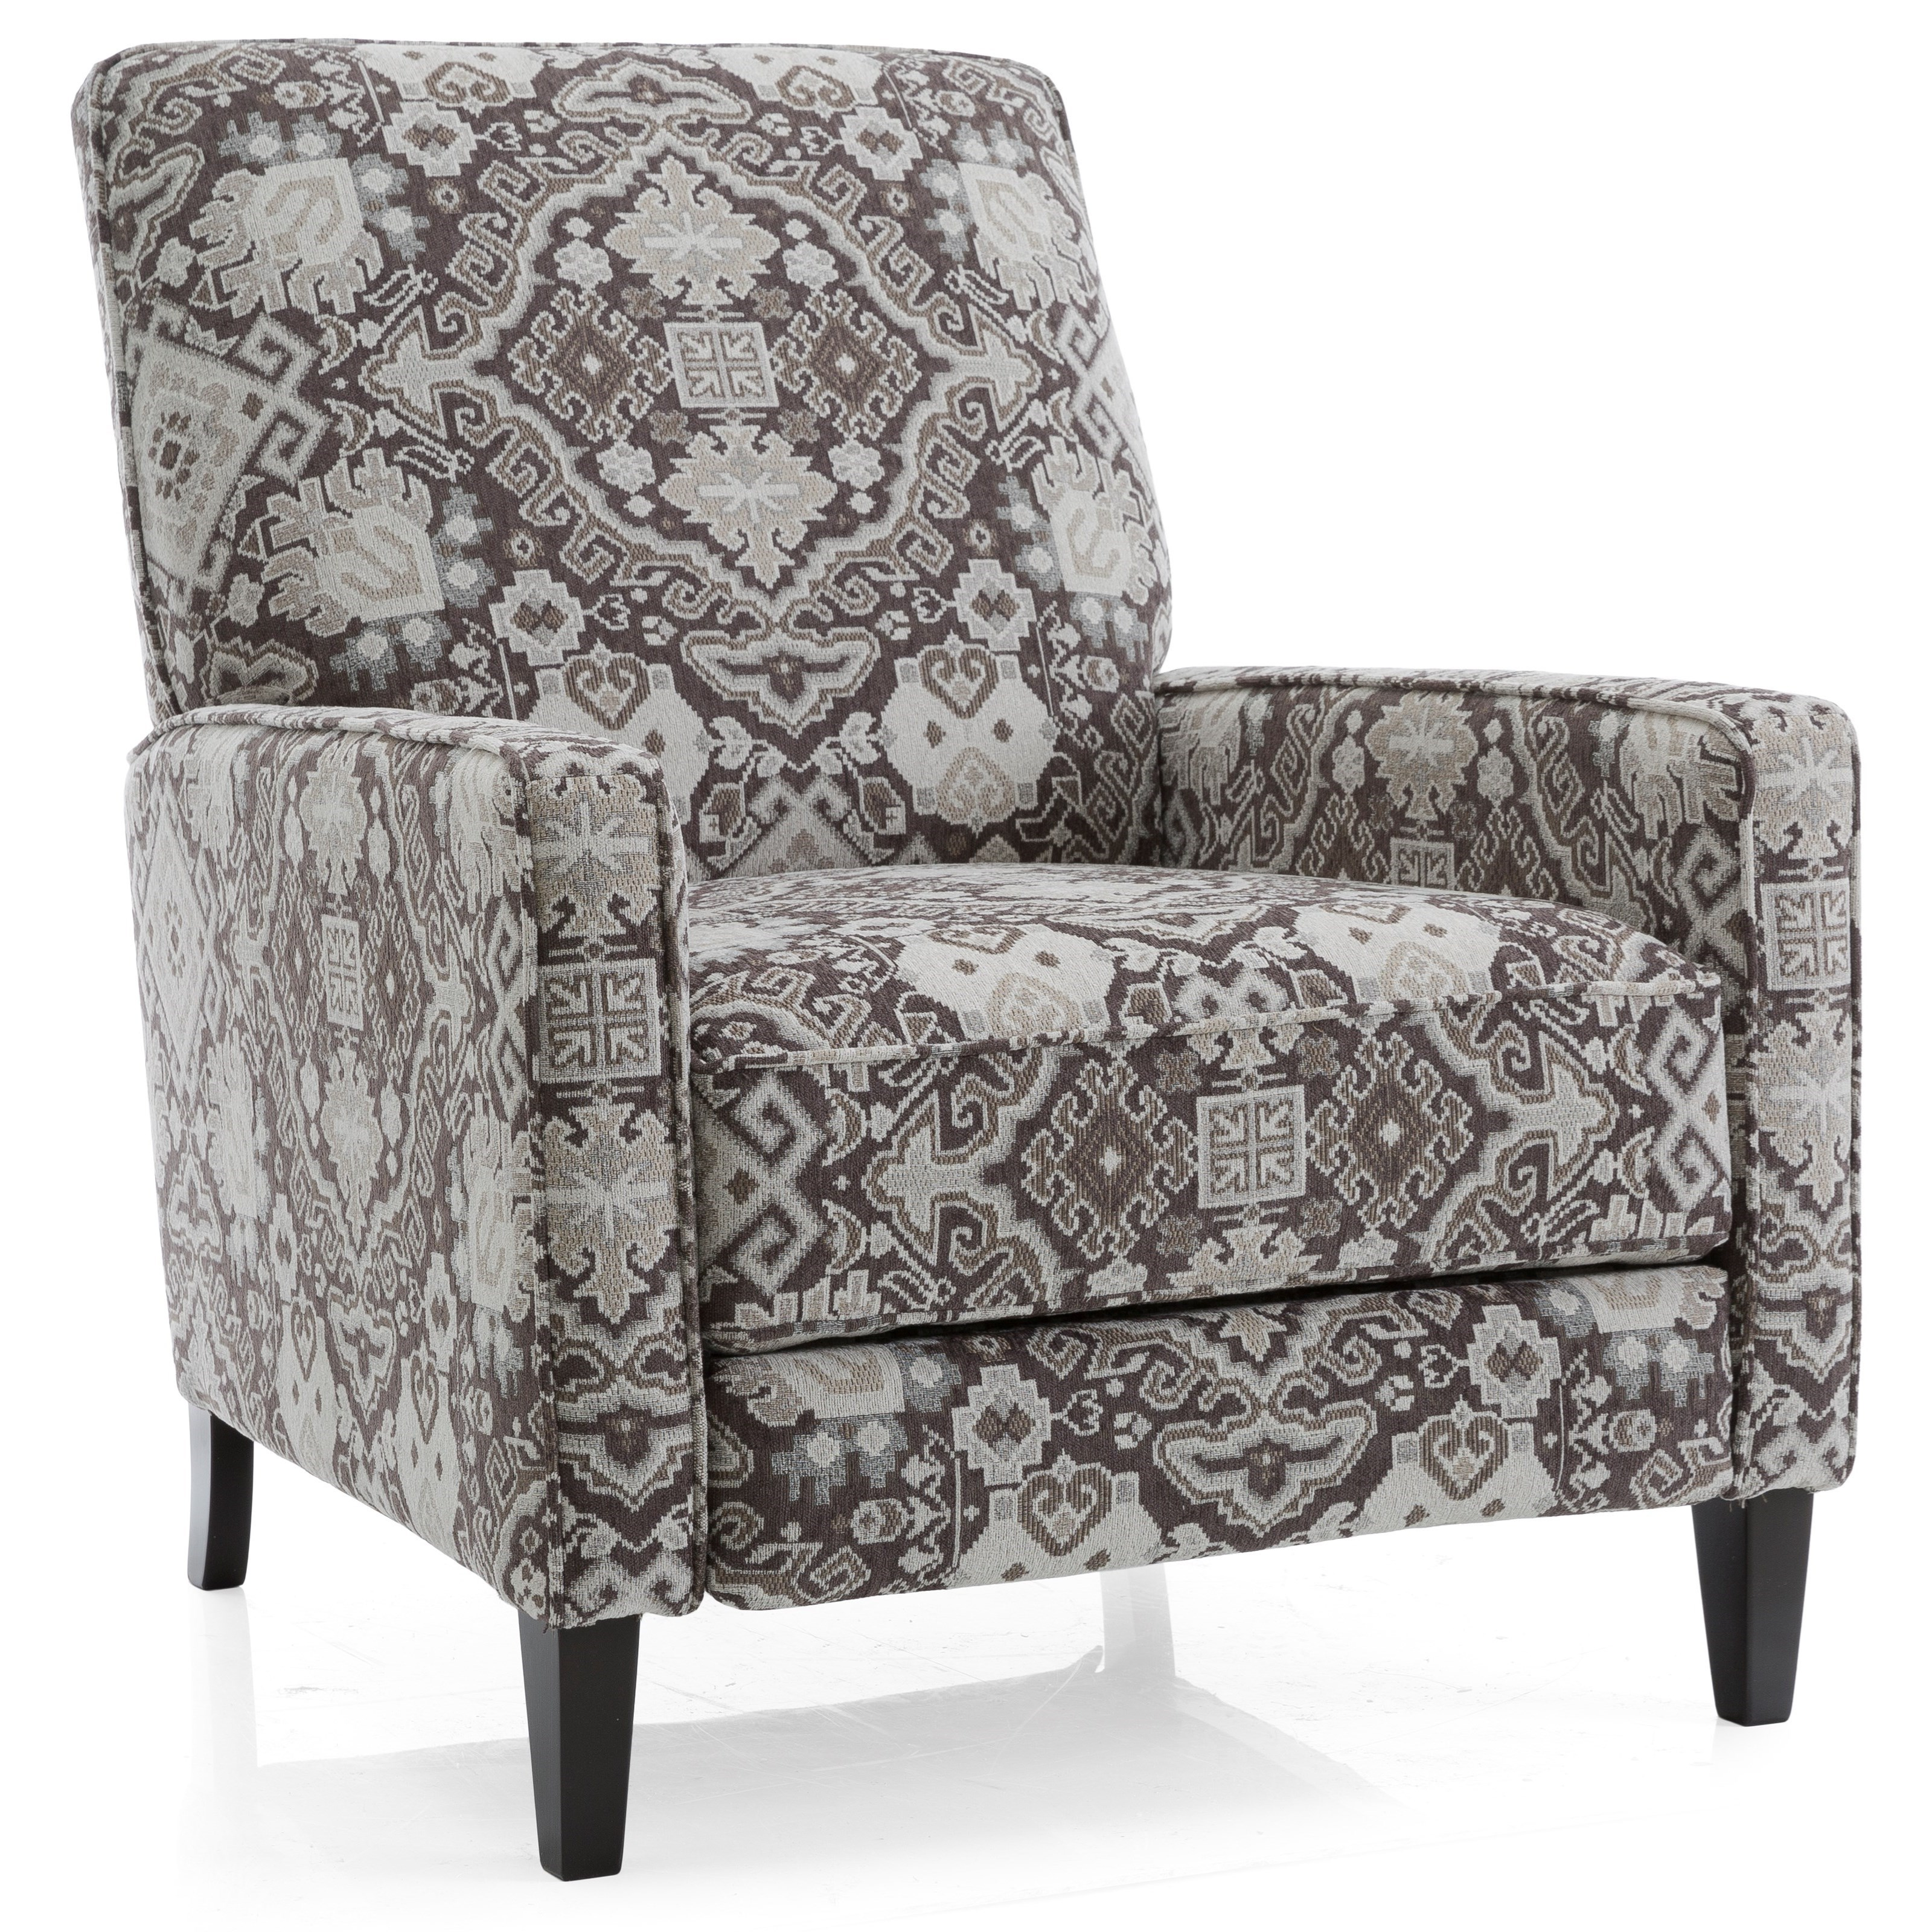 7612 Push Back Recliner by Decor-Rest at Stoney Creek Furniture